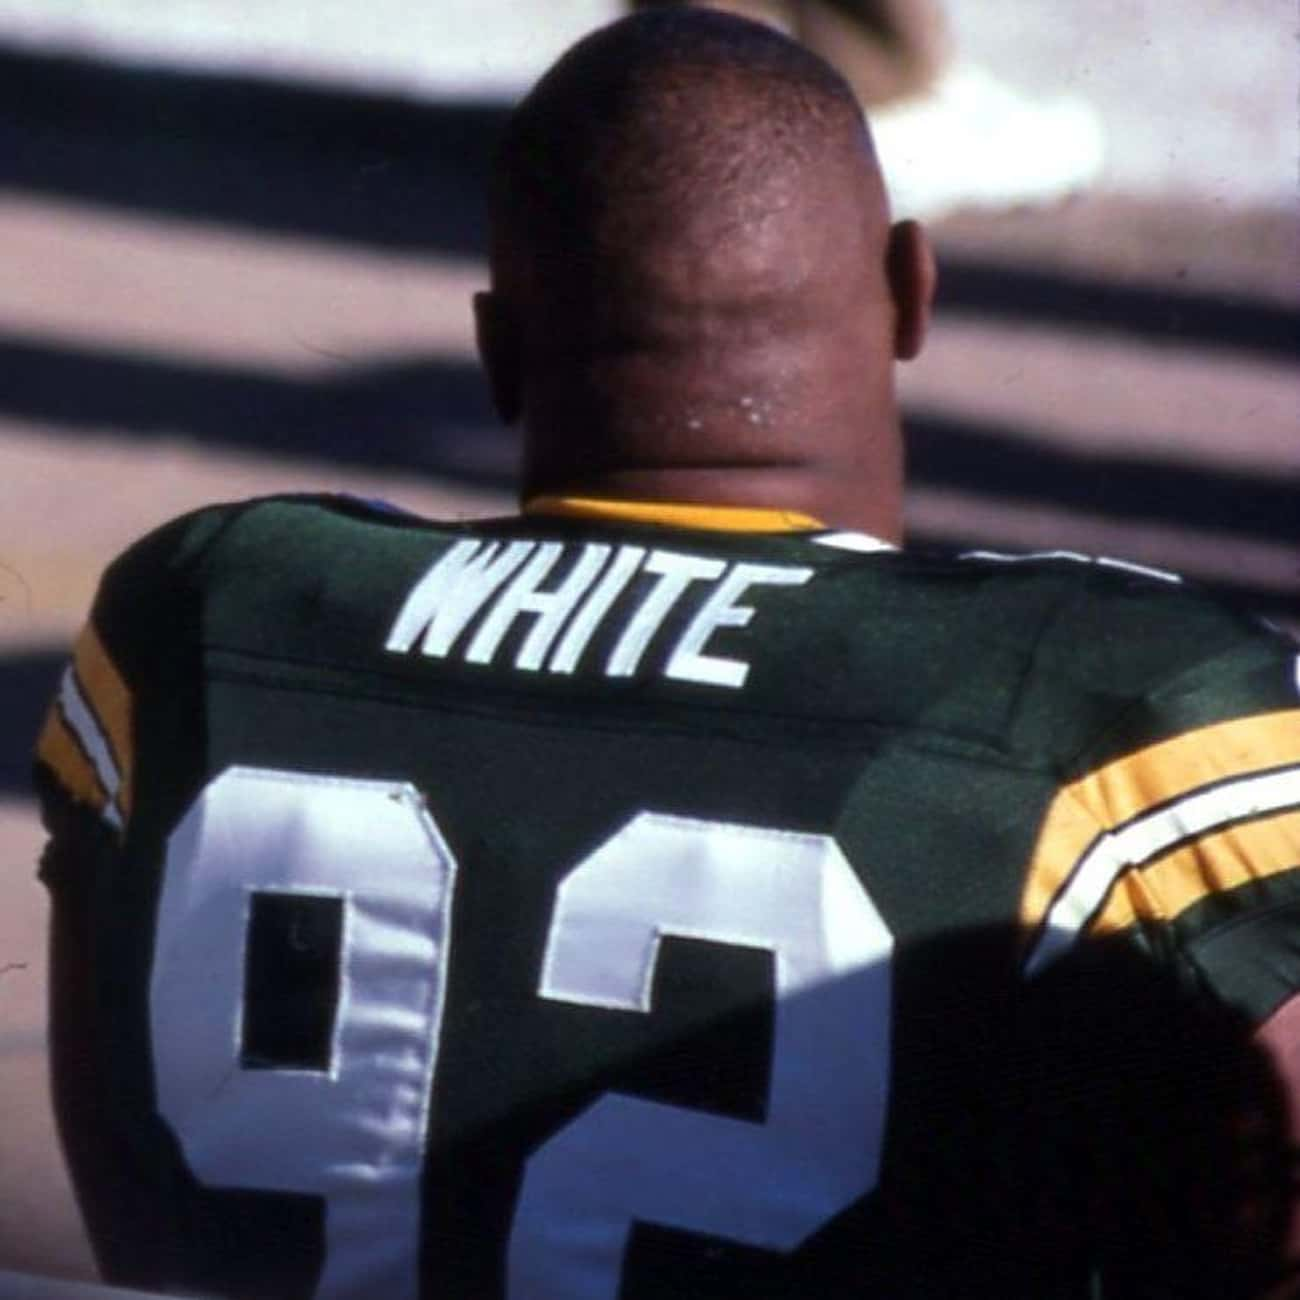 Reggie White is listed (or ranked) 1 on the list The Best Athletes Who Wore #92